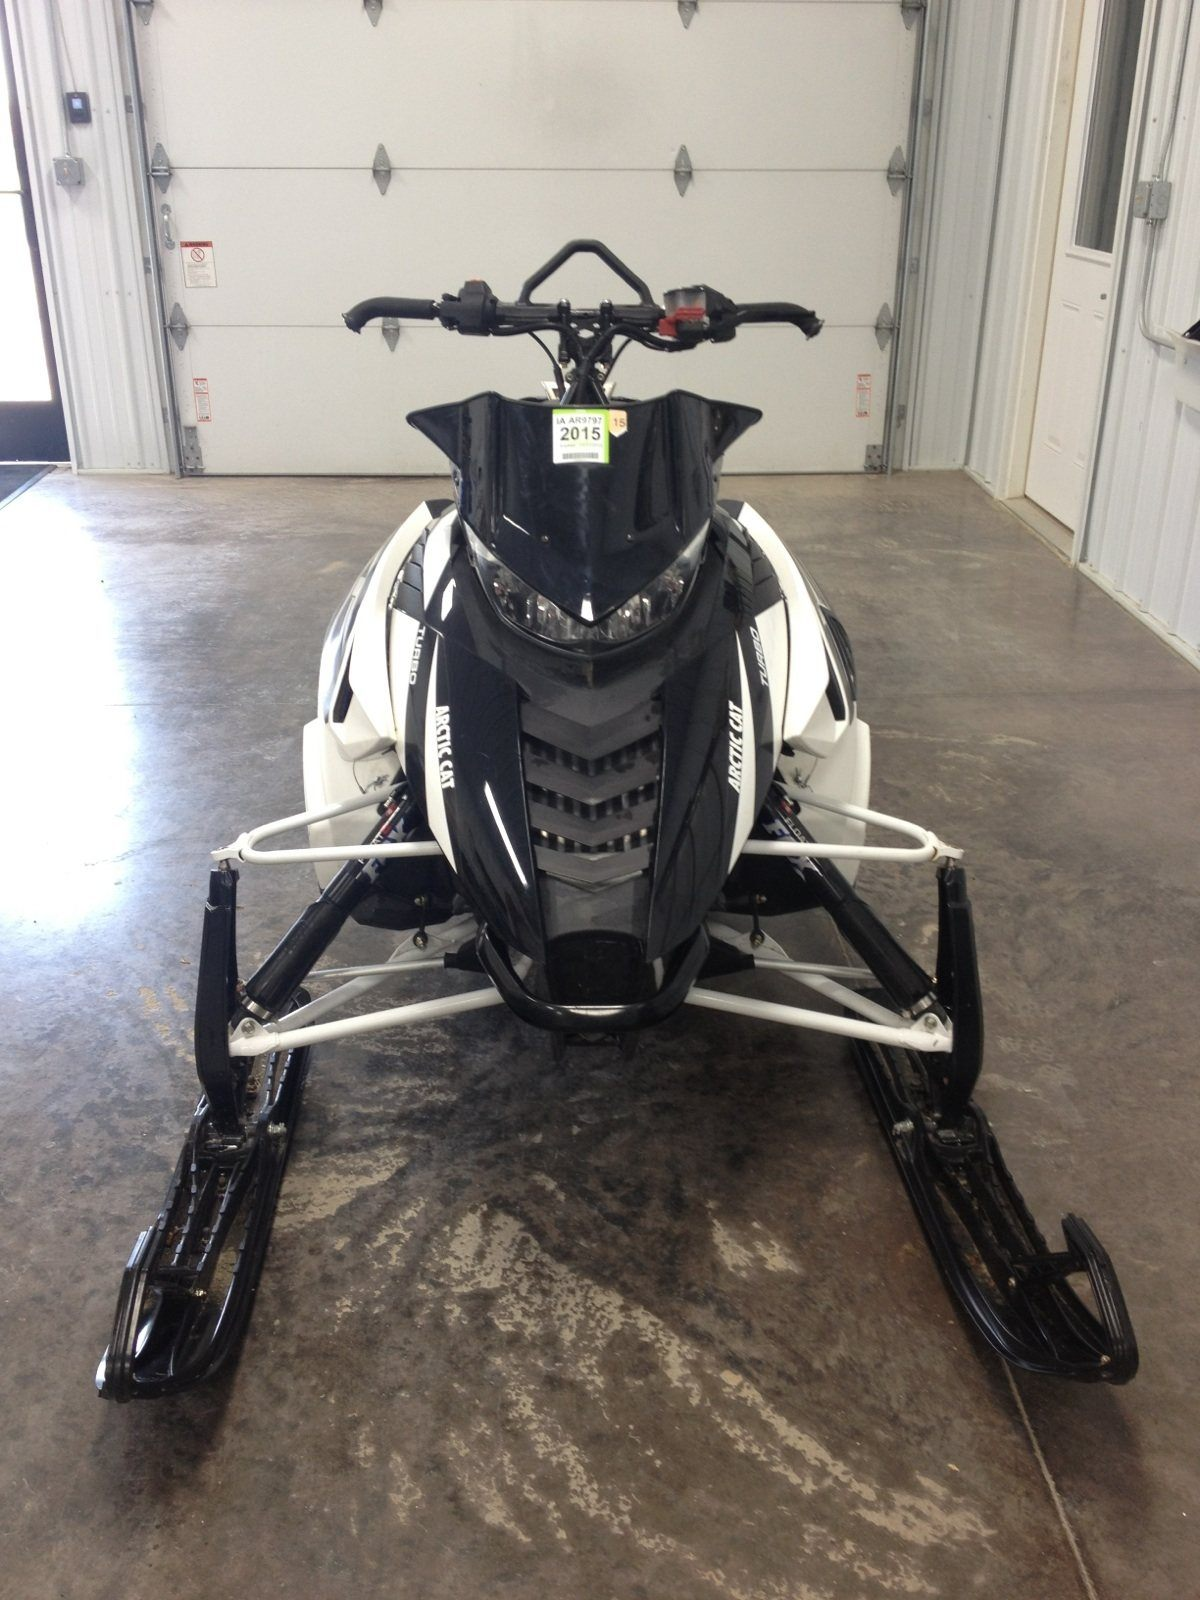 2013 Arctic Cat XF 1100 Turbo Sno Pro High Country Limited 2